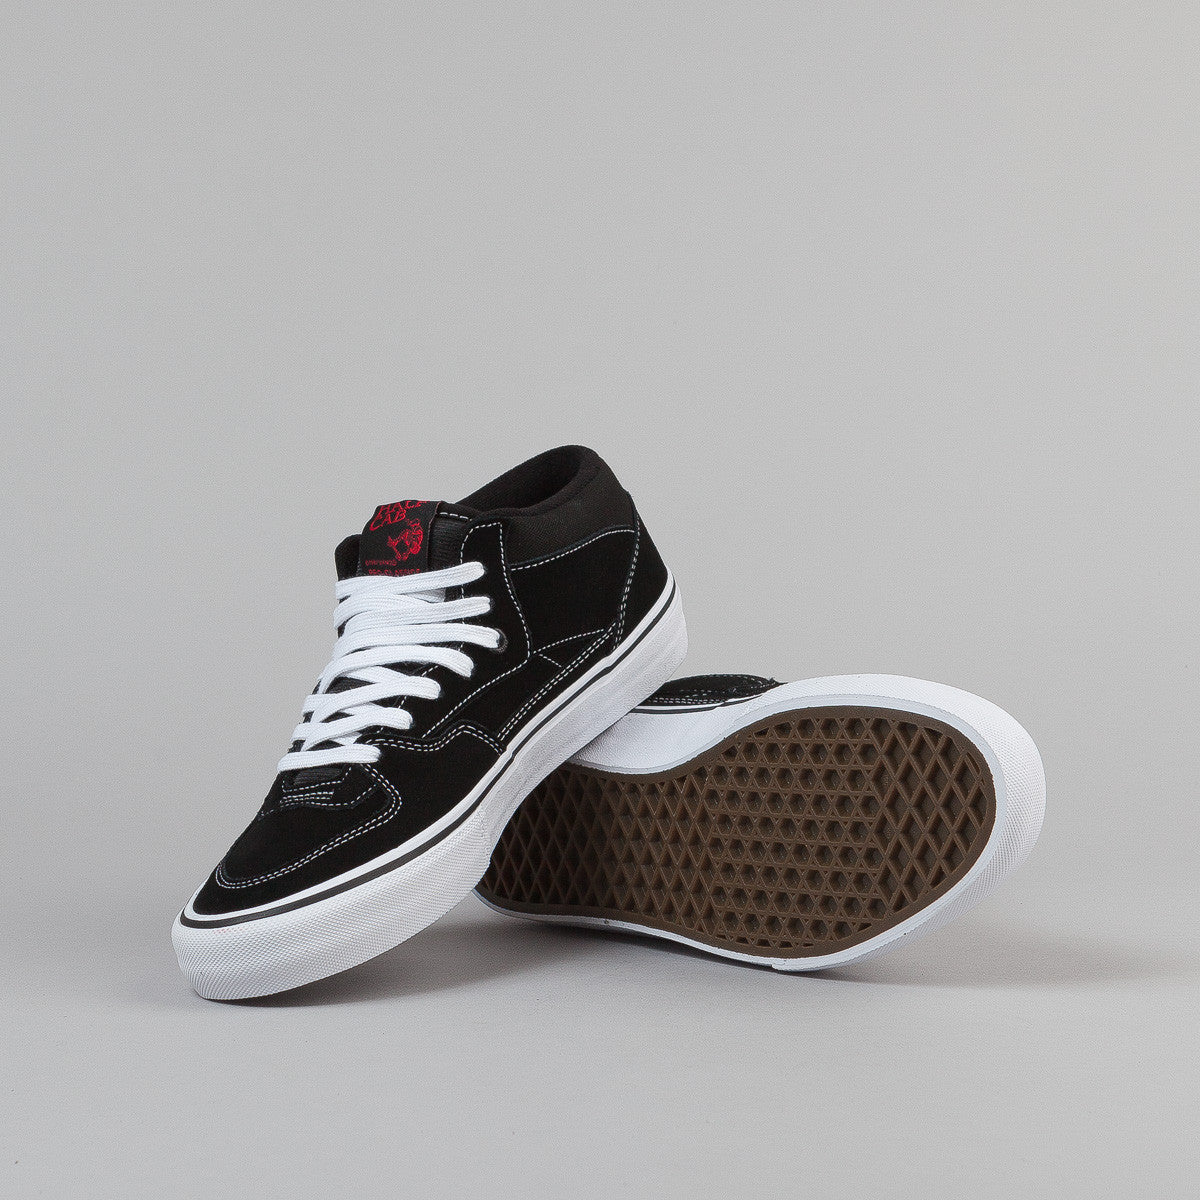 Vans Half Cab Pro Shoes - Black / White / Red